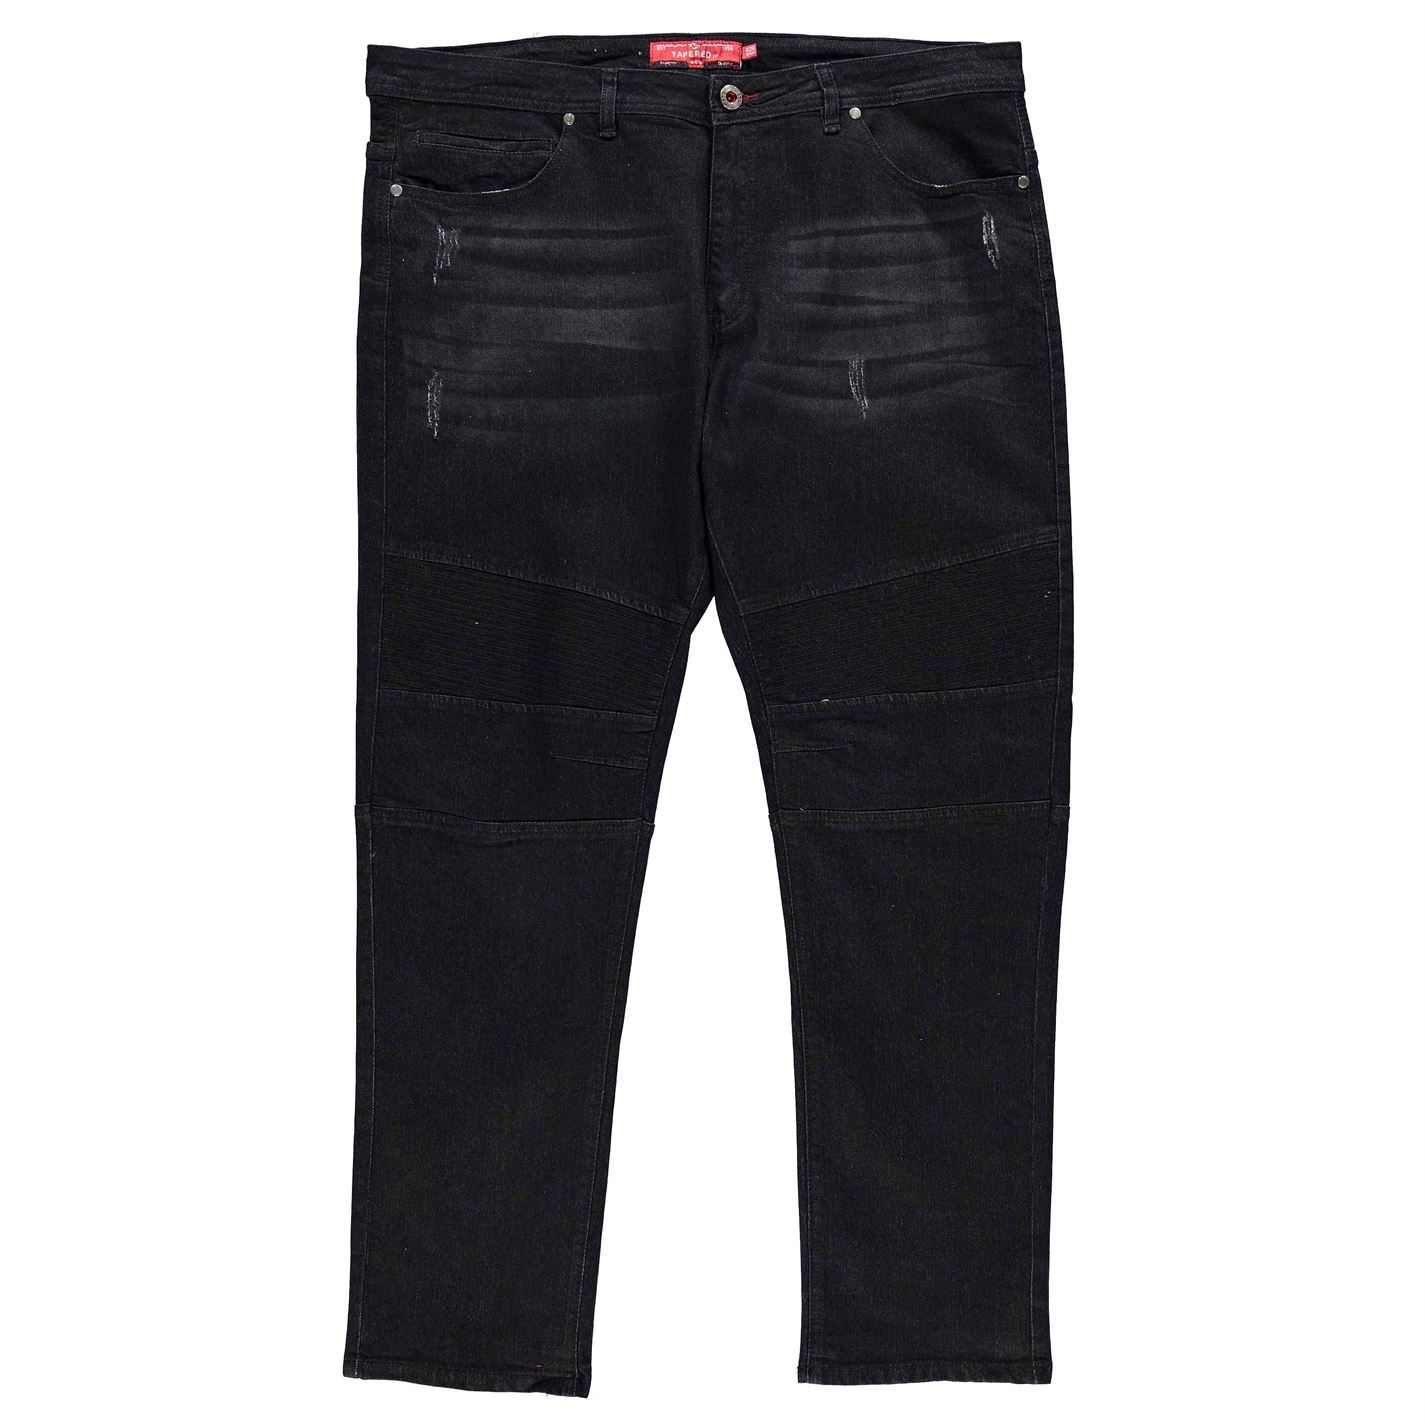 D555-Domenic-Tapered-Fit-Jeans-Mens-Gents-Loose-Pants-Trousers-Bottoms-Zip